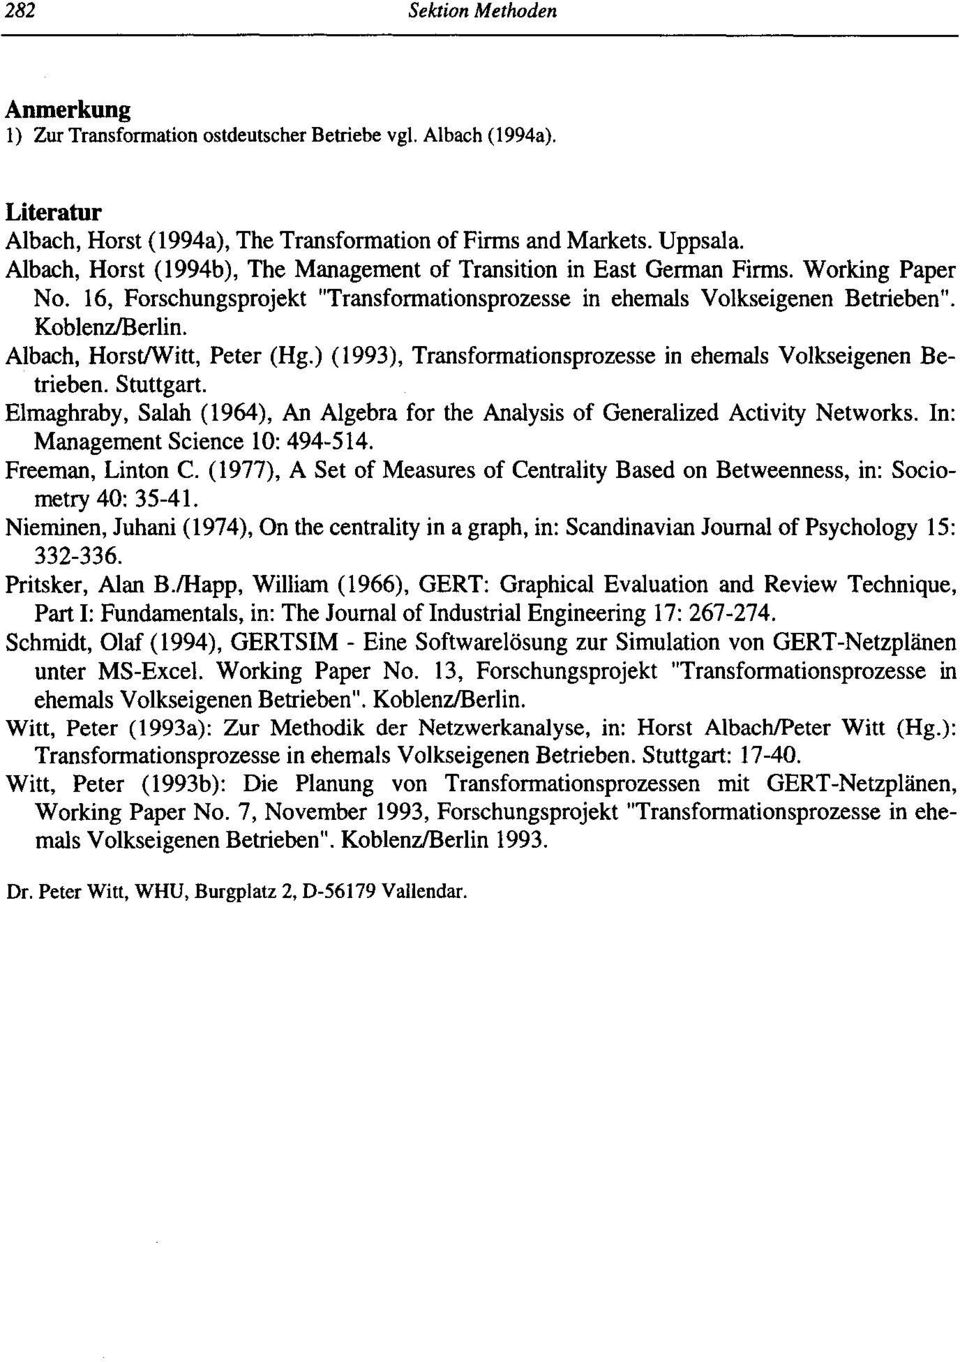 Albach, Horst/Witt, Peter (Hg.) (1993), Transformationsprozesse in ehemals Volkseigenen Be trieben. Stuttgart. Elmaghraby, Salah (1964), An Algebra for the Analysis of Generalized Activity Networks.